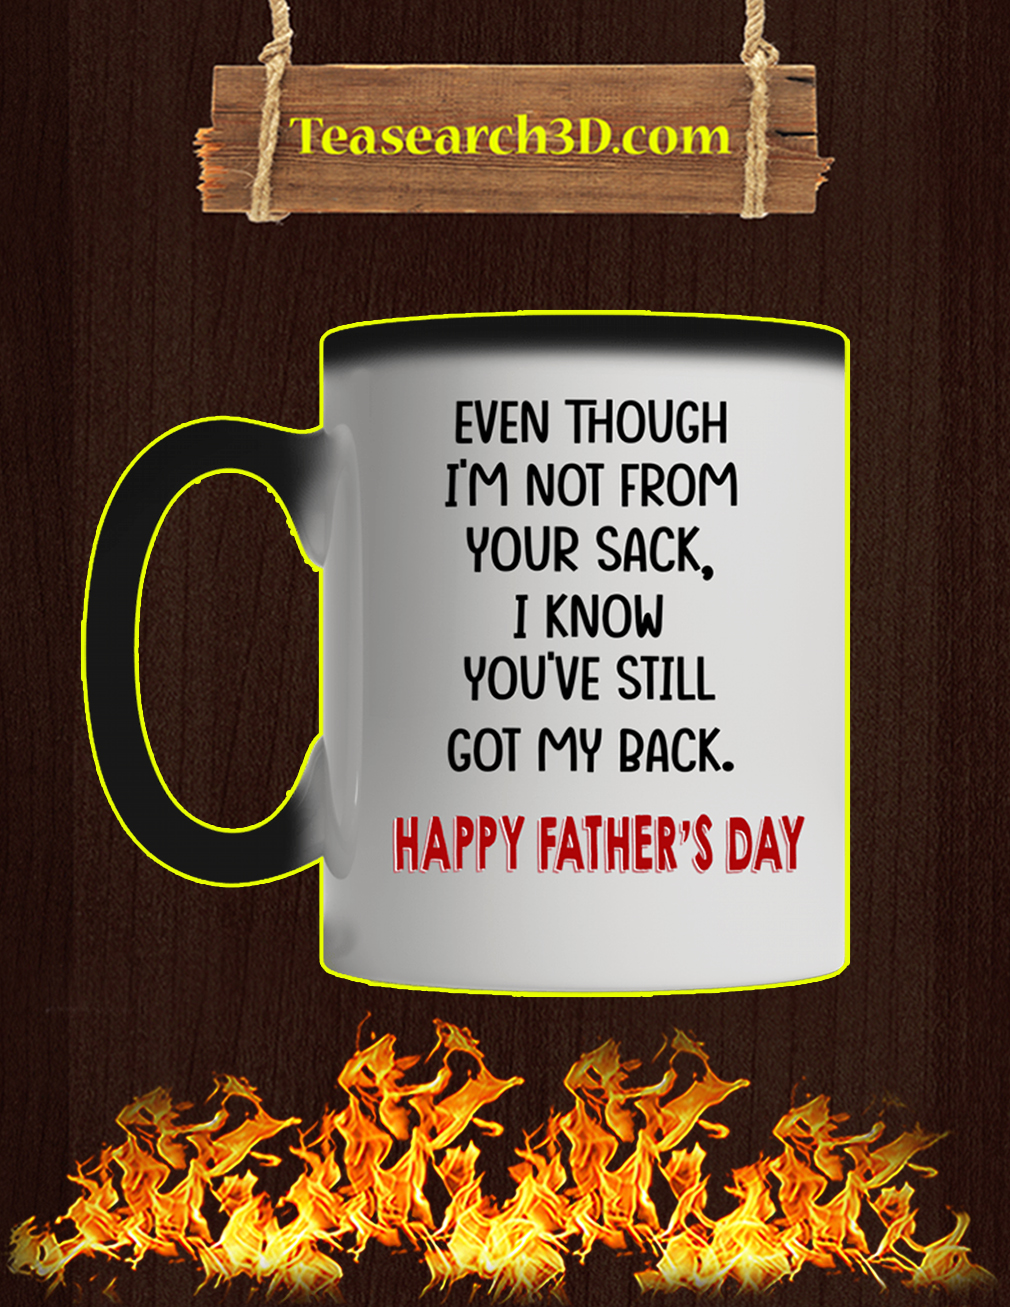 Even though i'm not from your sack i know you've still got my back happy father's day mug magic